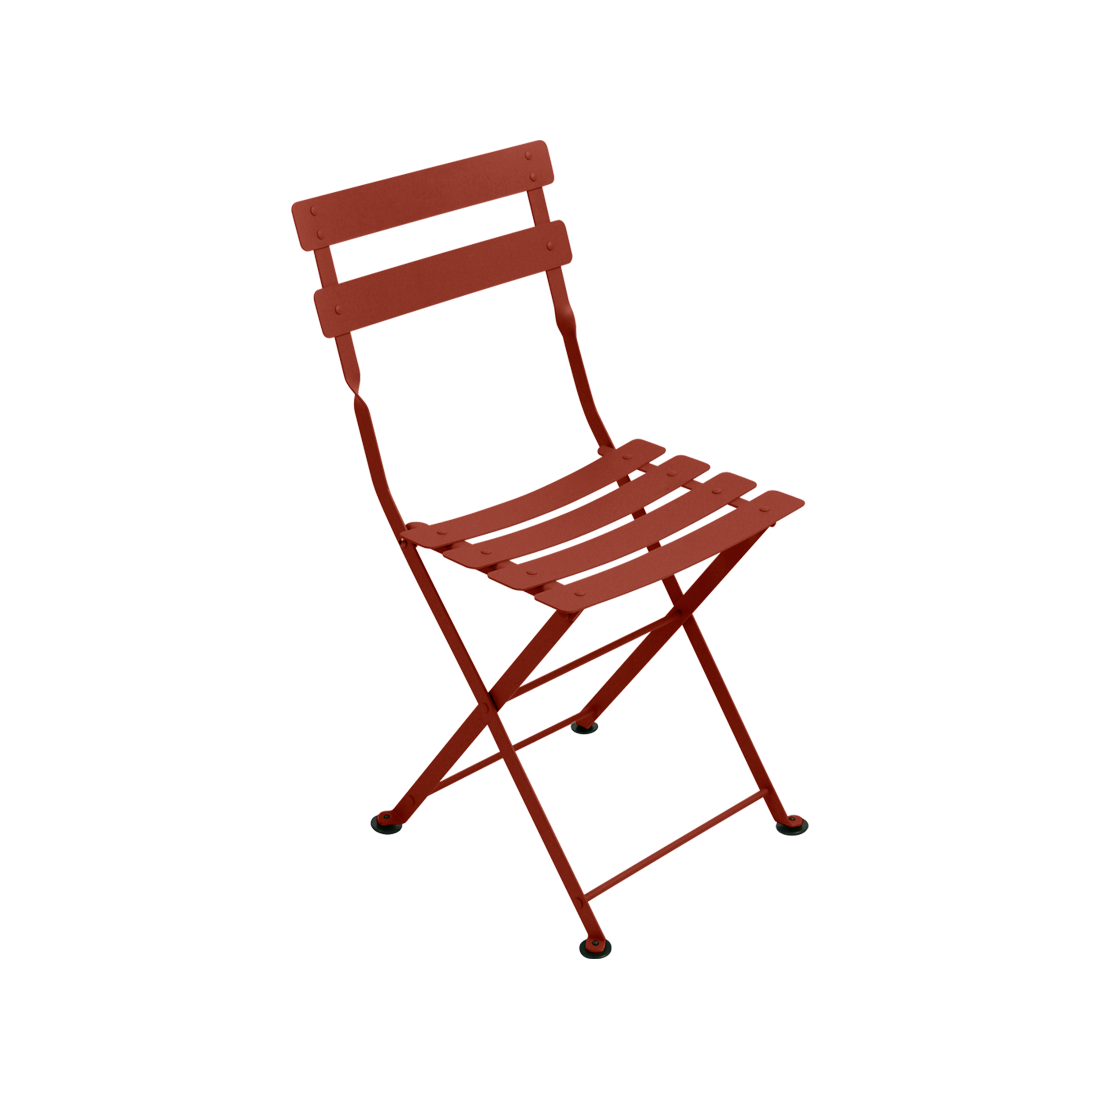 Chaise tom pouce ocre rouge